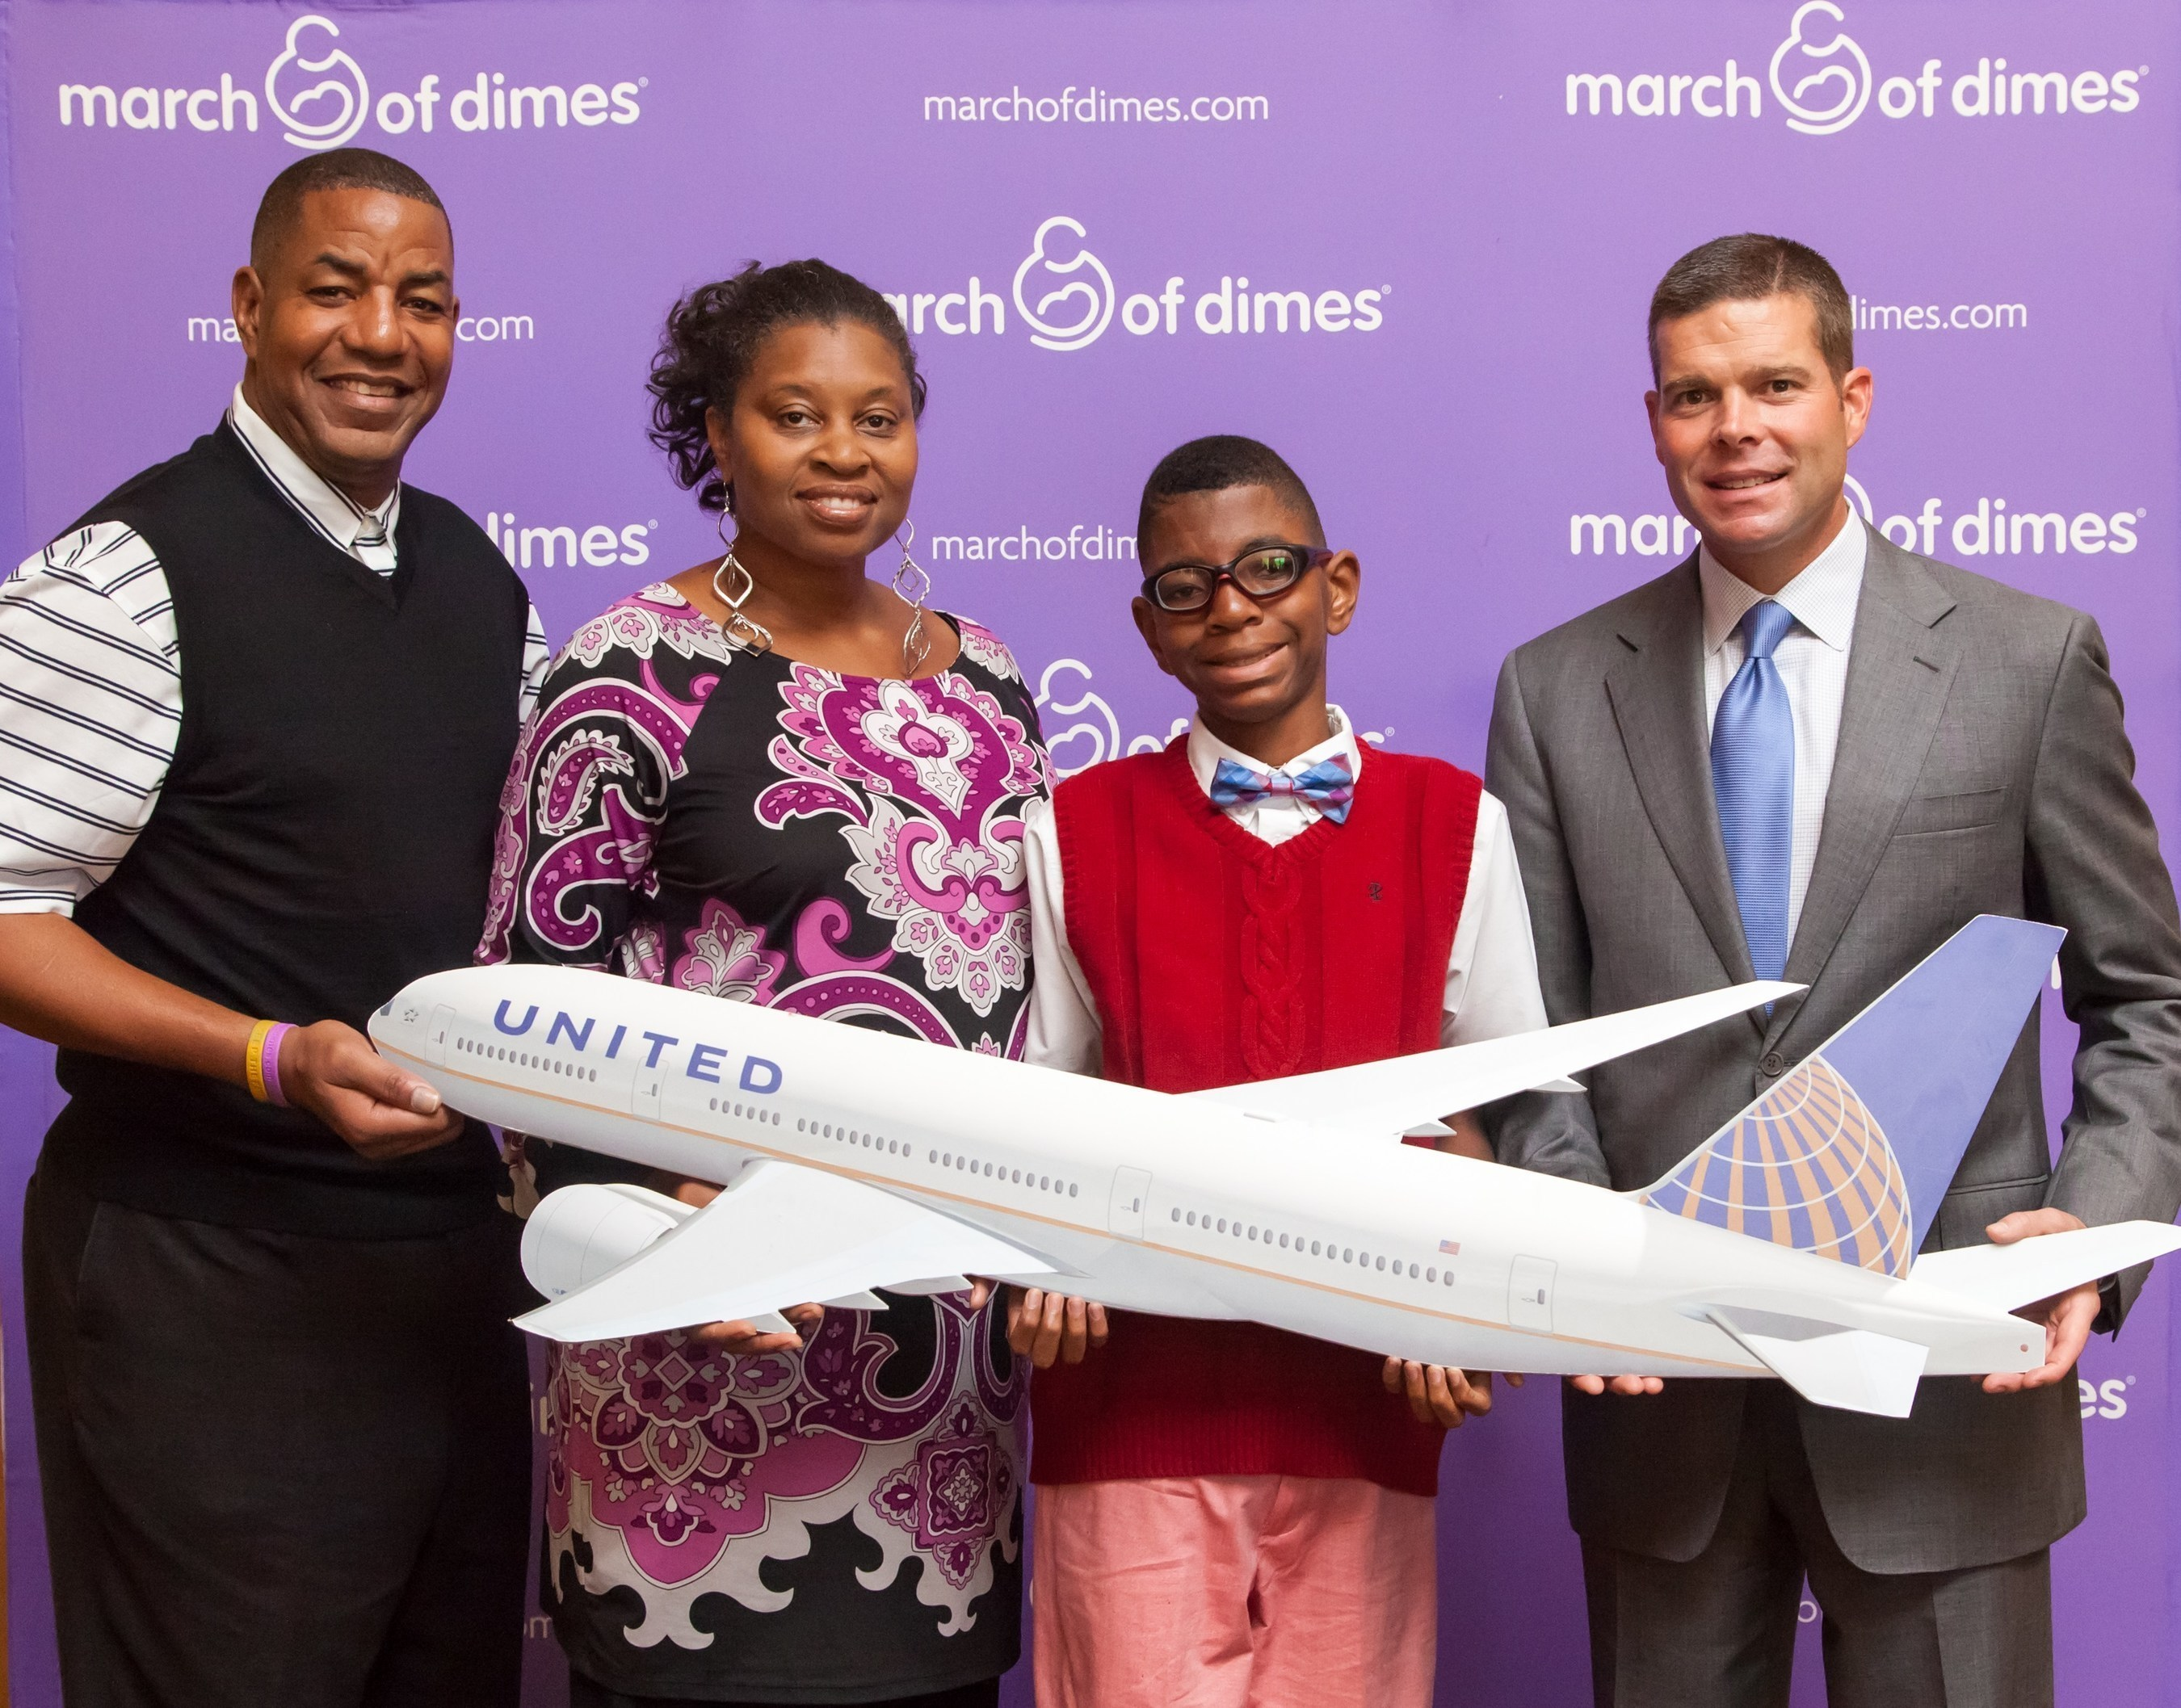 2015 March of Dimes Ambassador family Todd Jackson, United Airlines employee Elise Jackson and son Elijah with ...